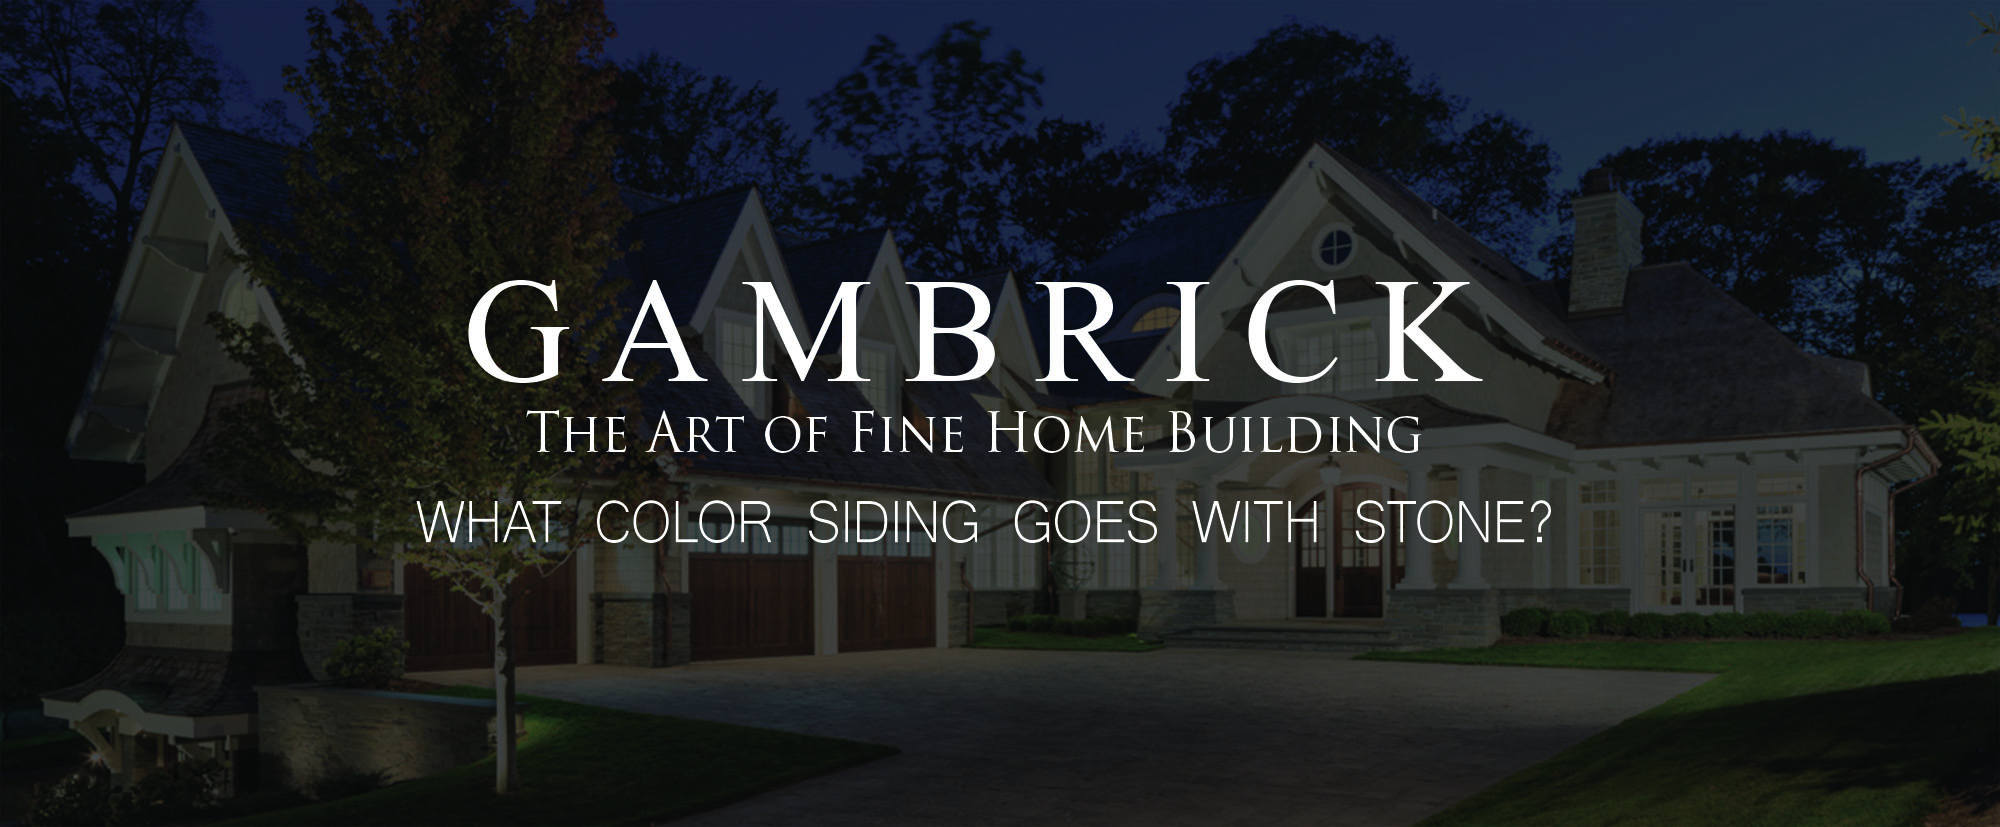 what color siding goes with stone banner | Gambrick